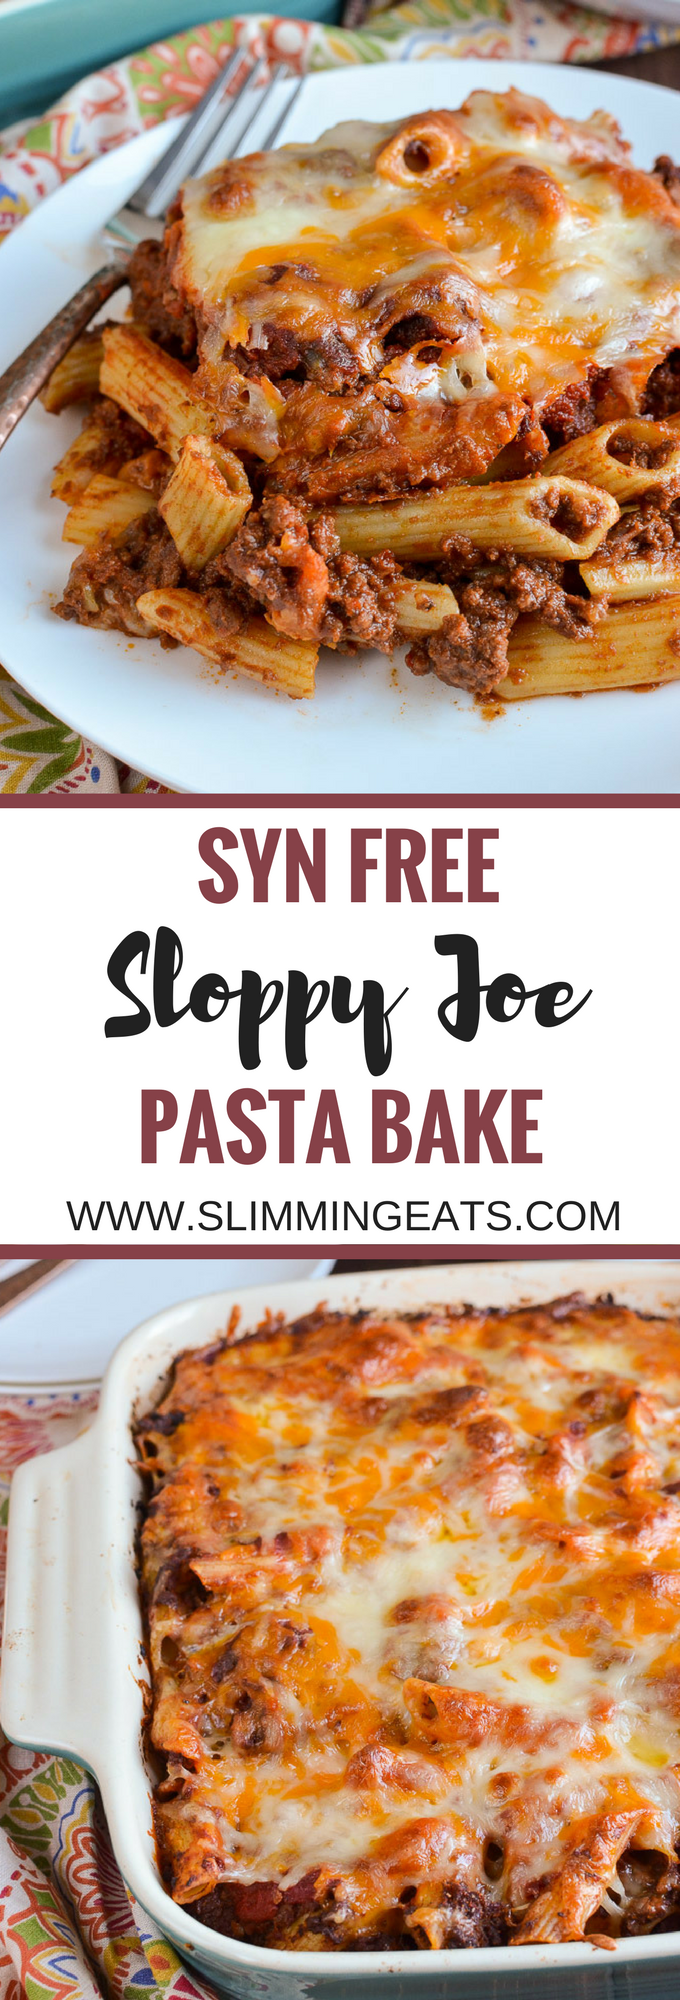 #watchers #slimming #friendly #gluten #sloppy #weight #pasta #world #free #bake #free #syn #joe #and...